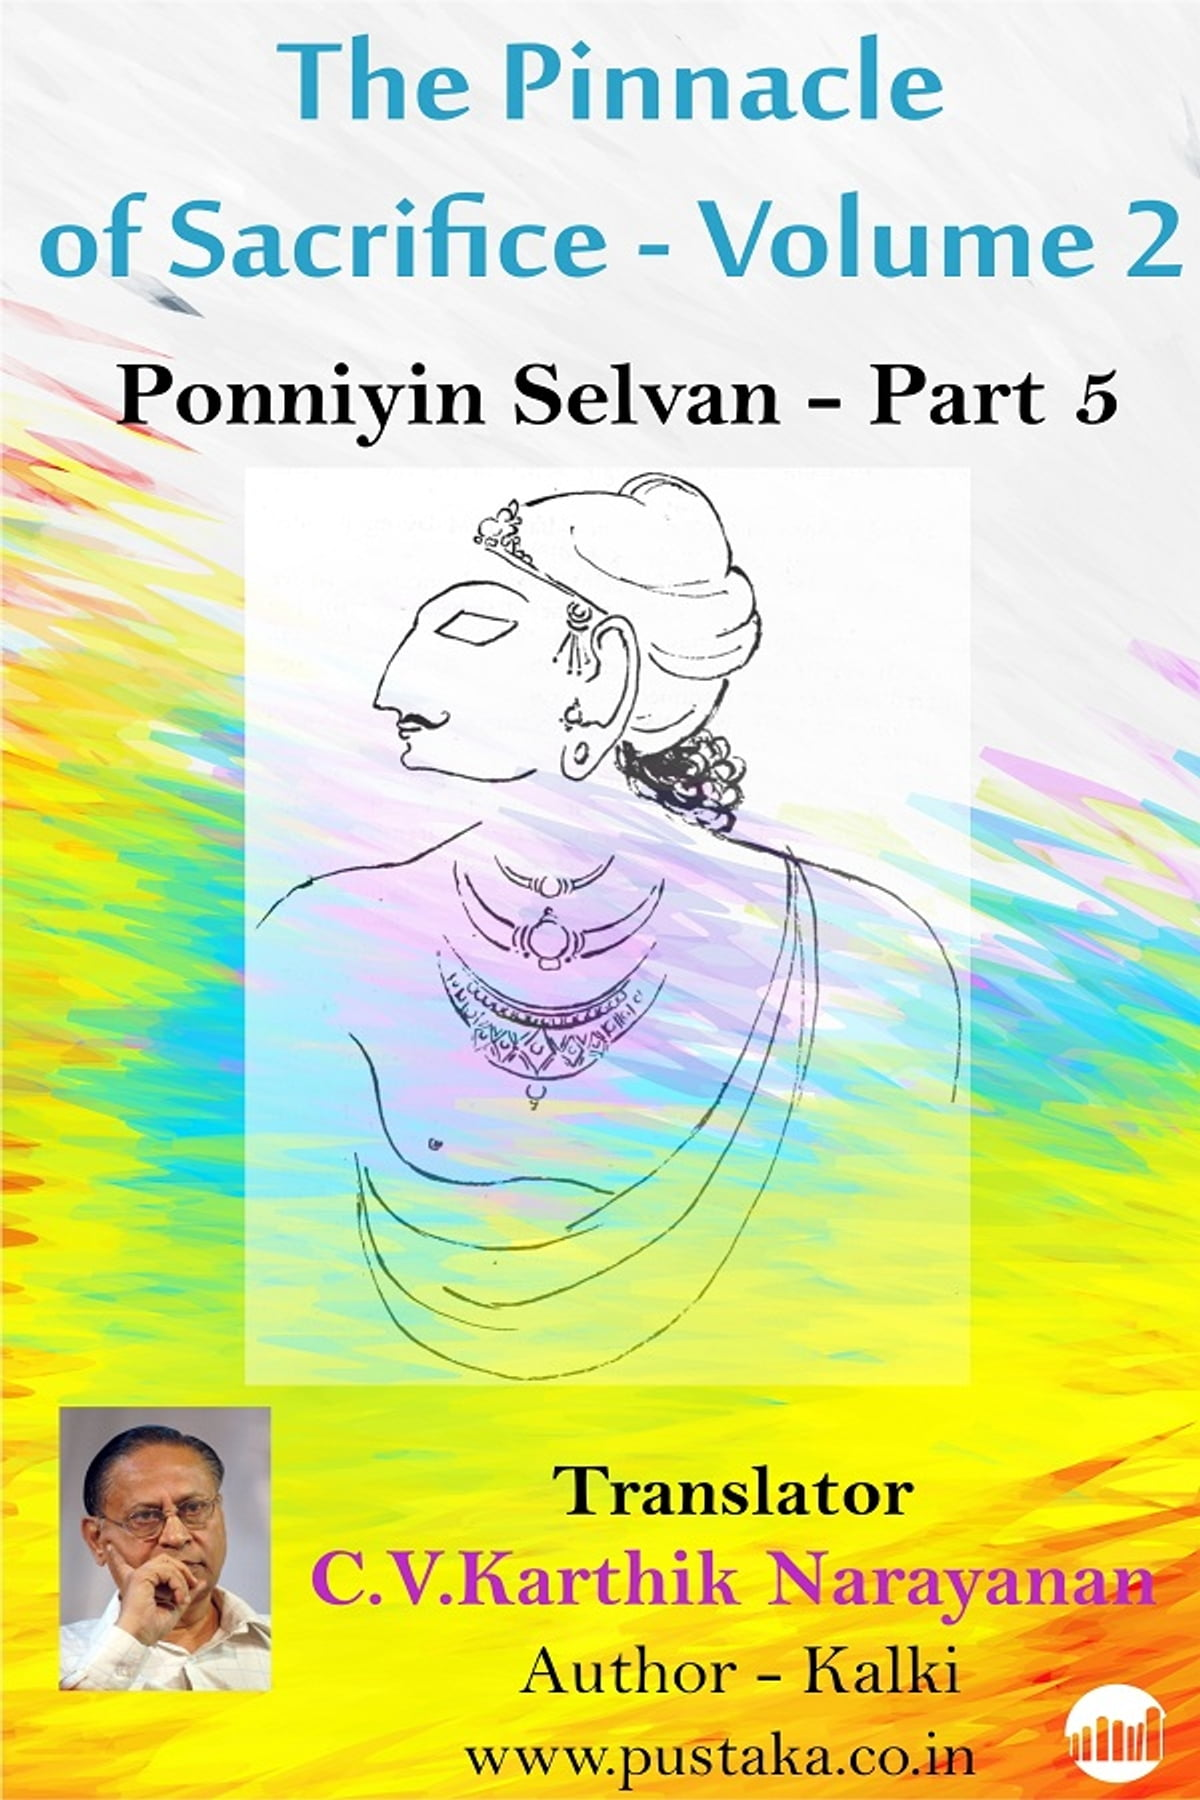 the pinnacle of sacrifice - volume 2 - ponniyin selvan